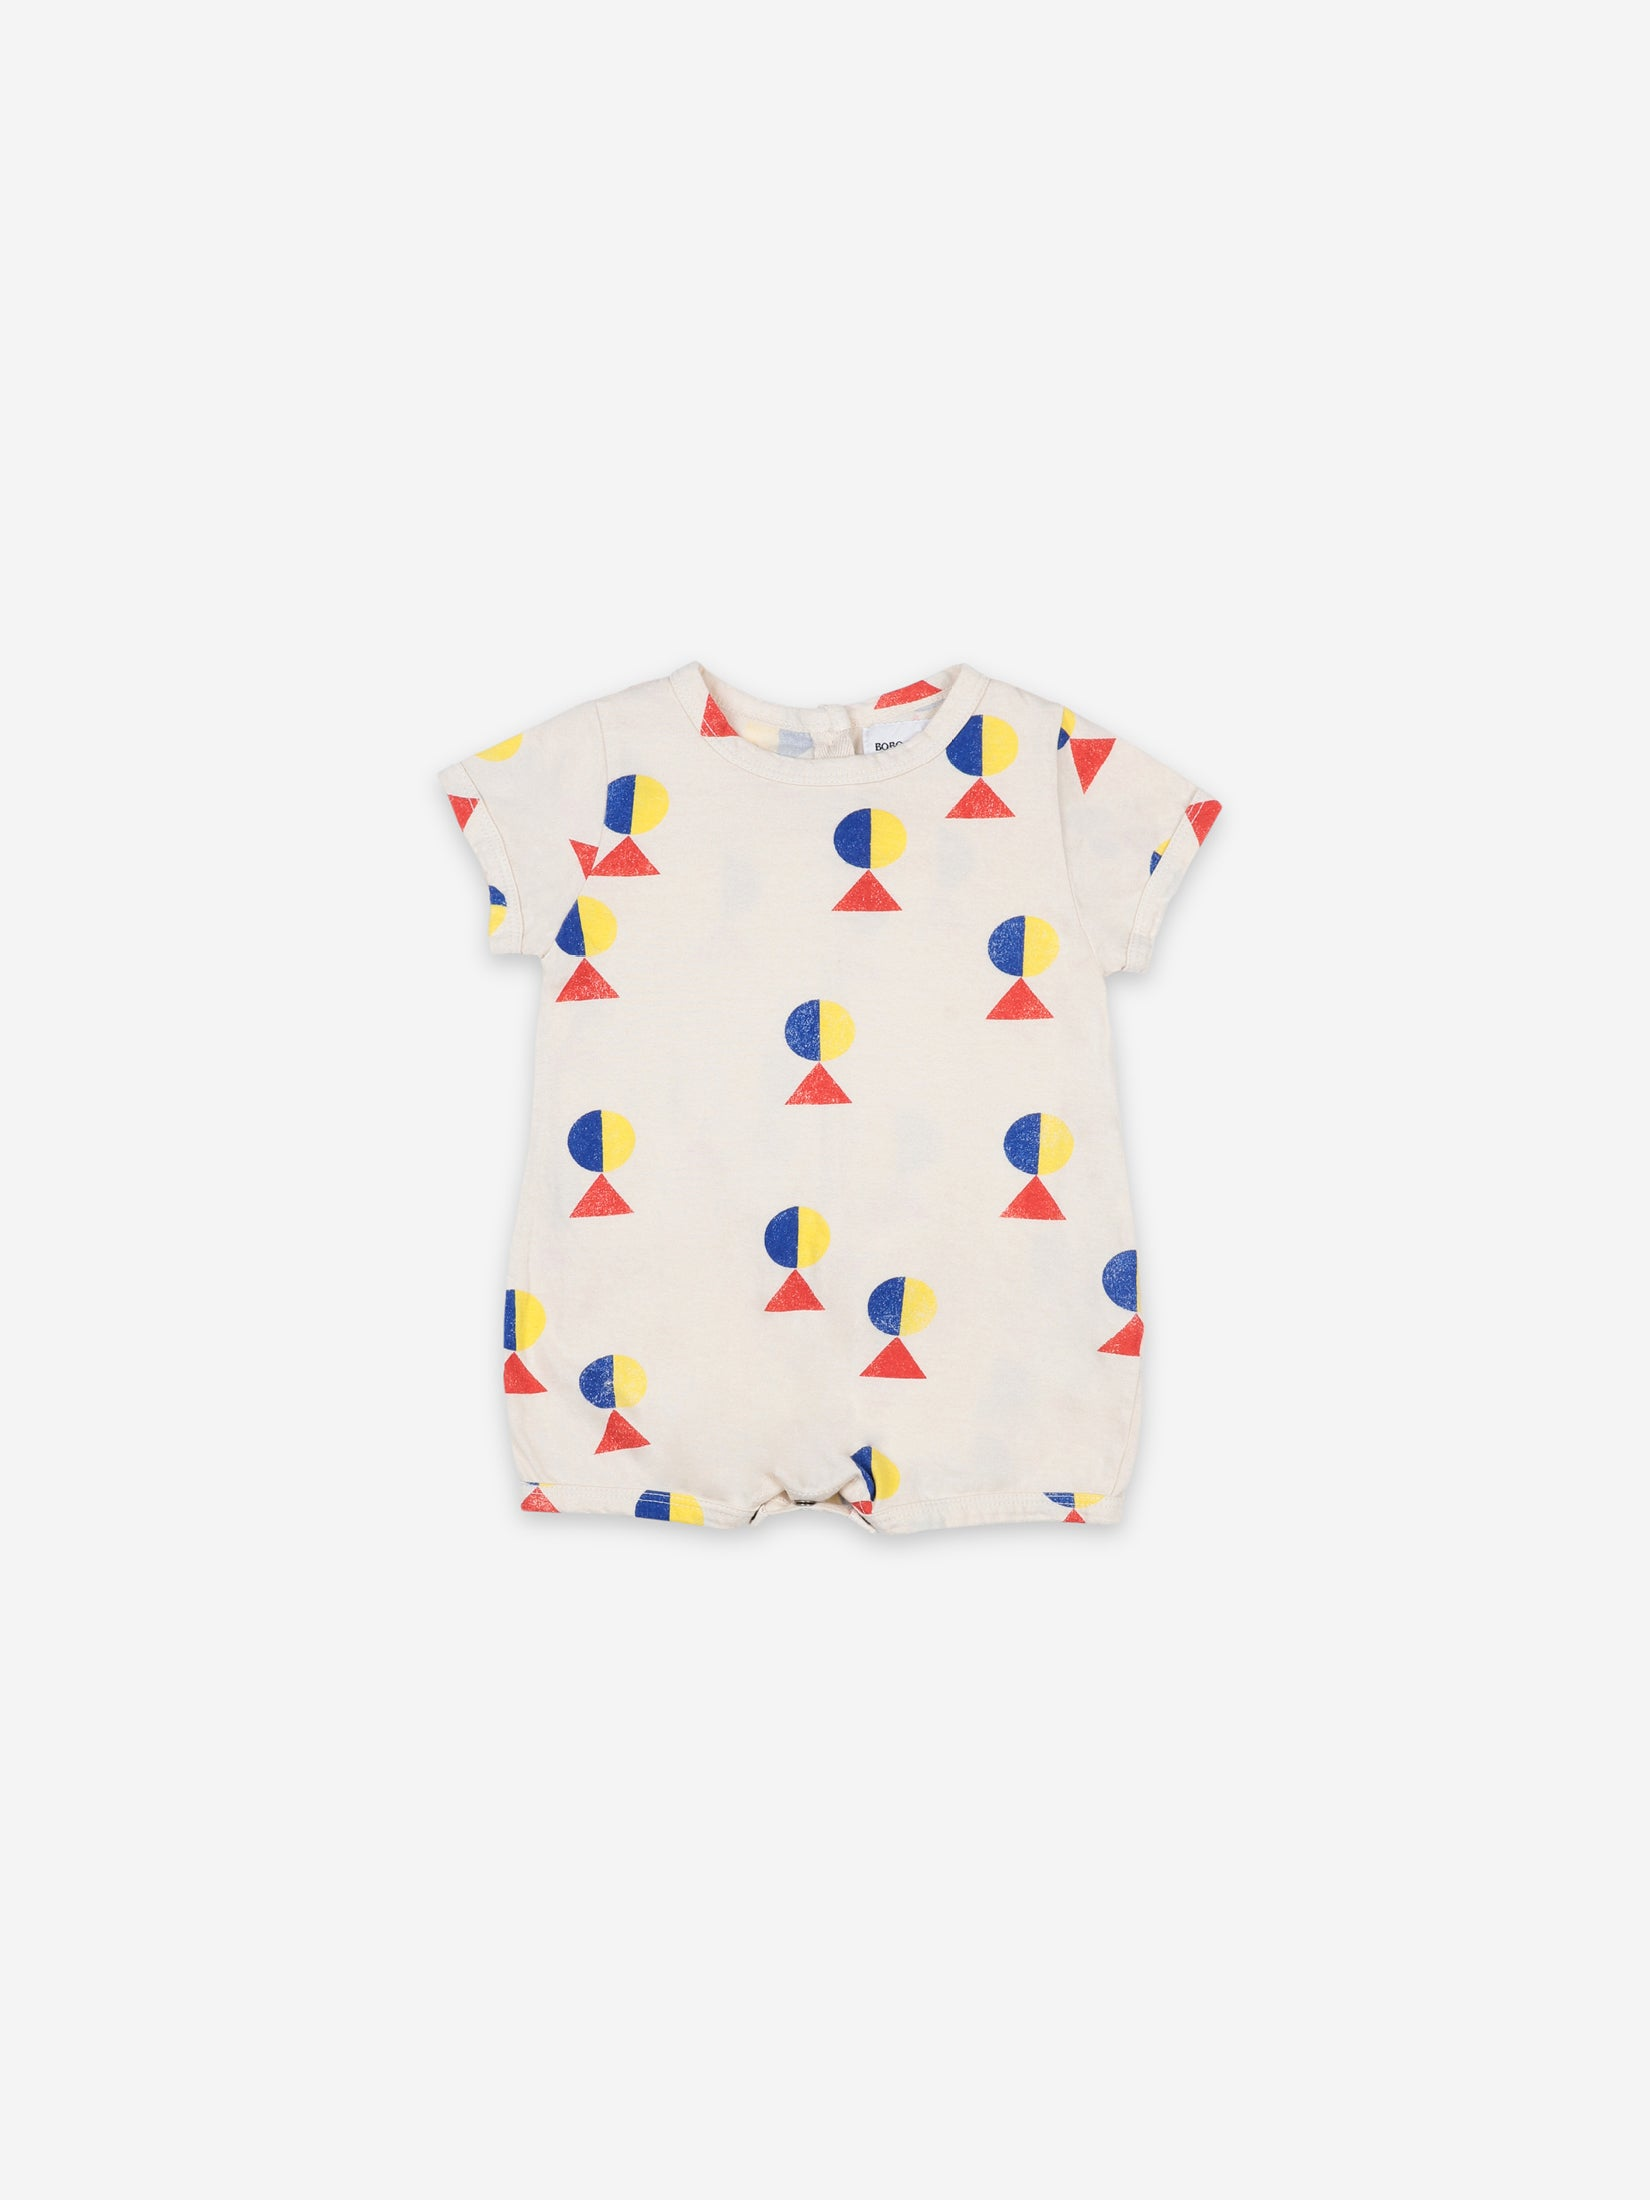 Bobo Choses Baby Geometric All Over Playsuit | Sweet Threads